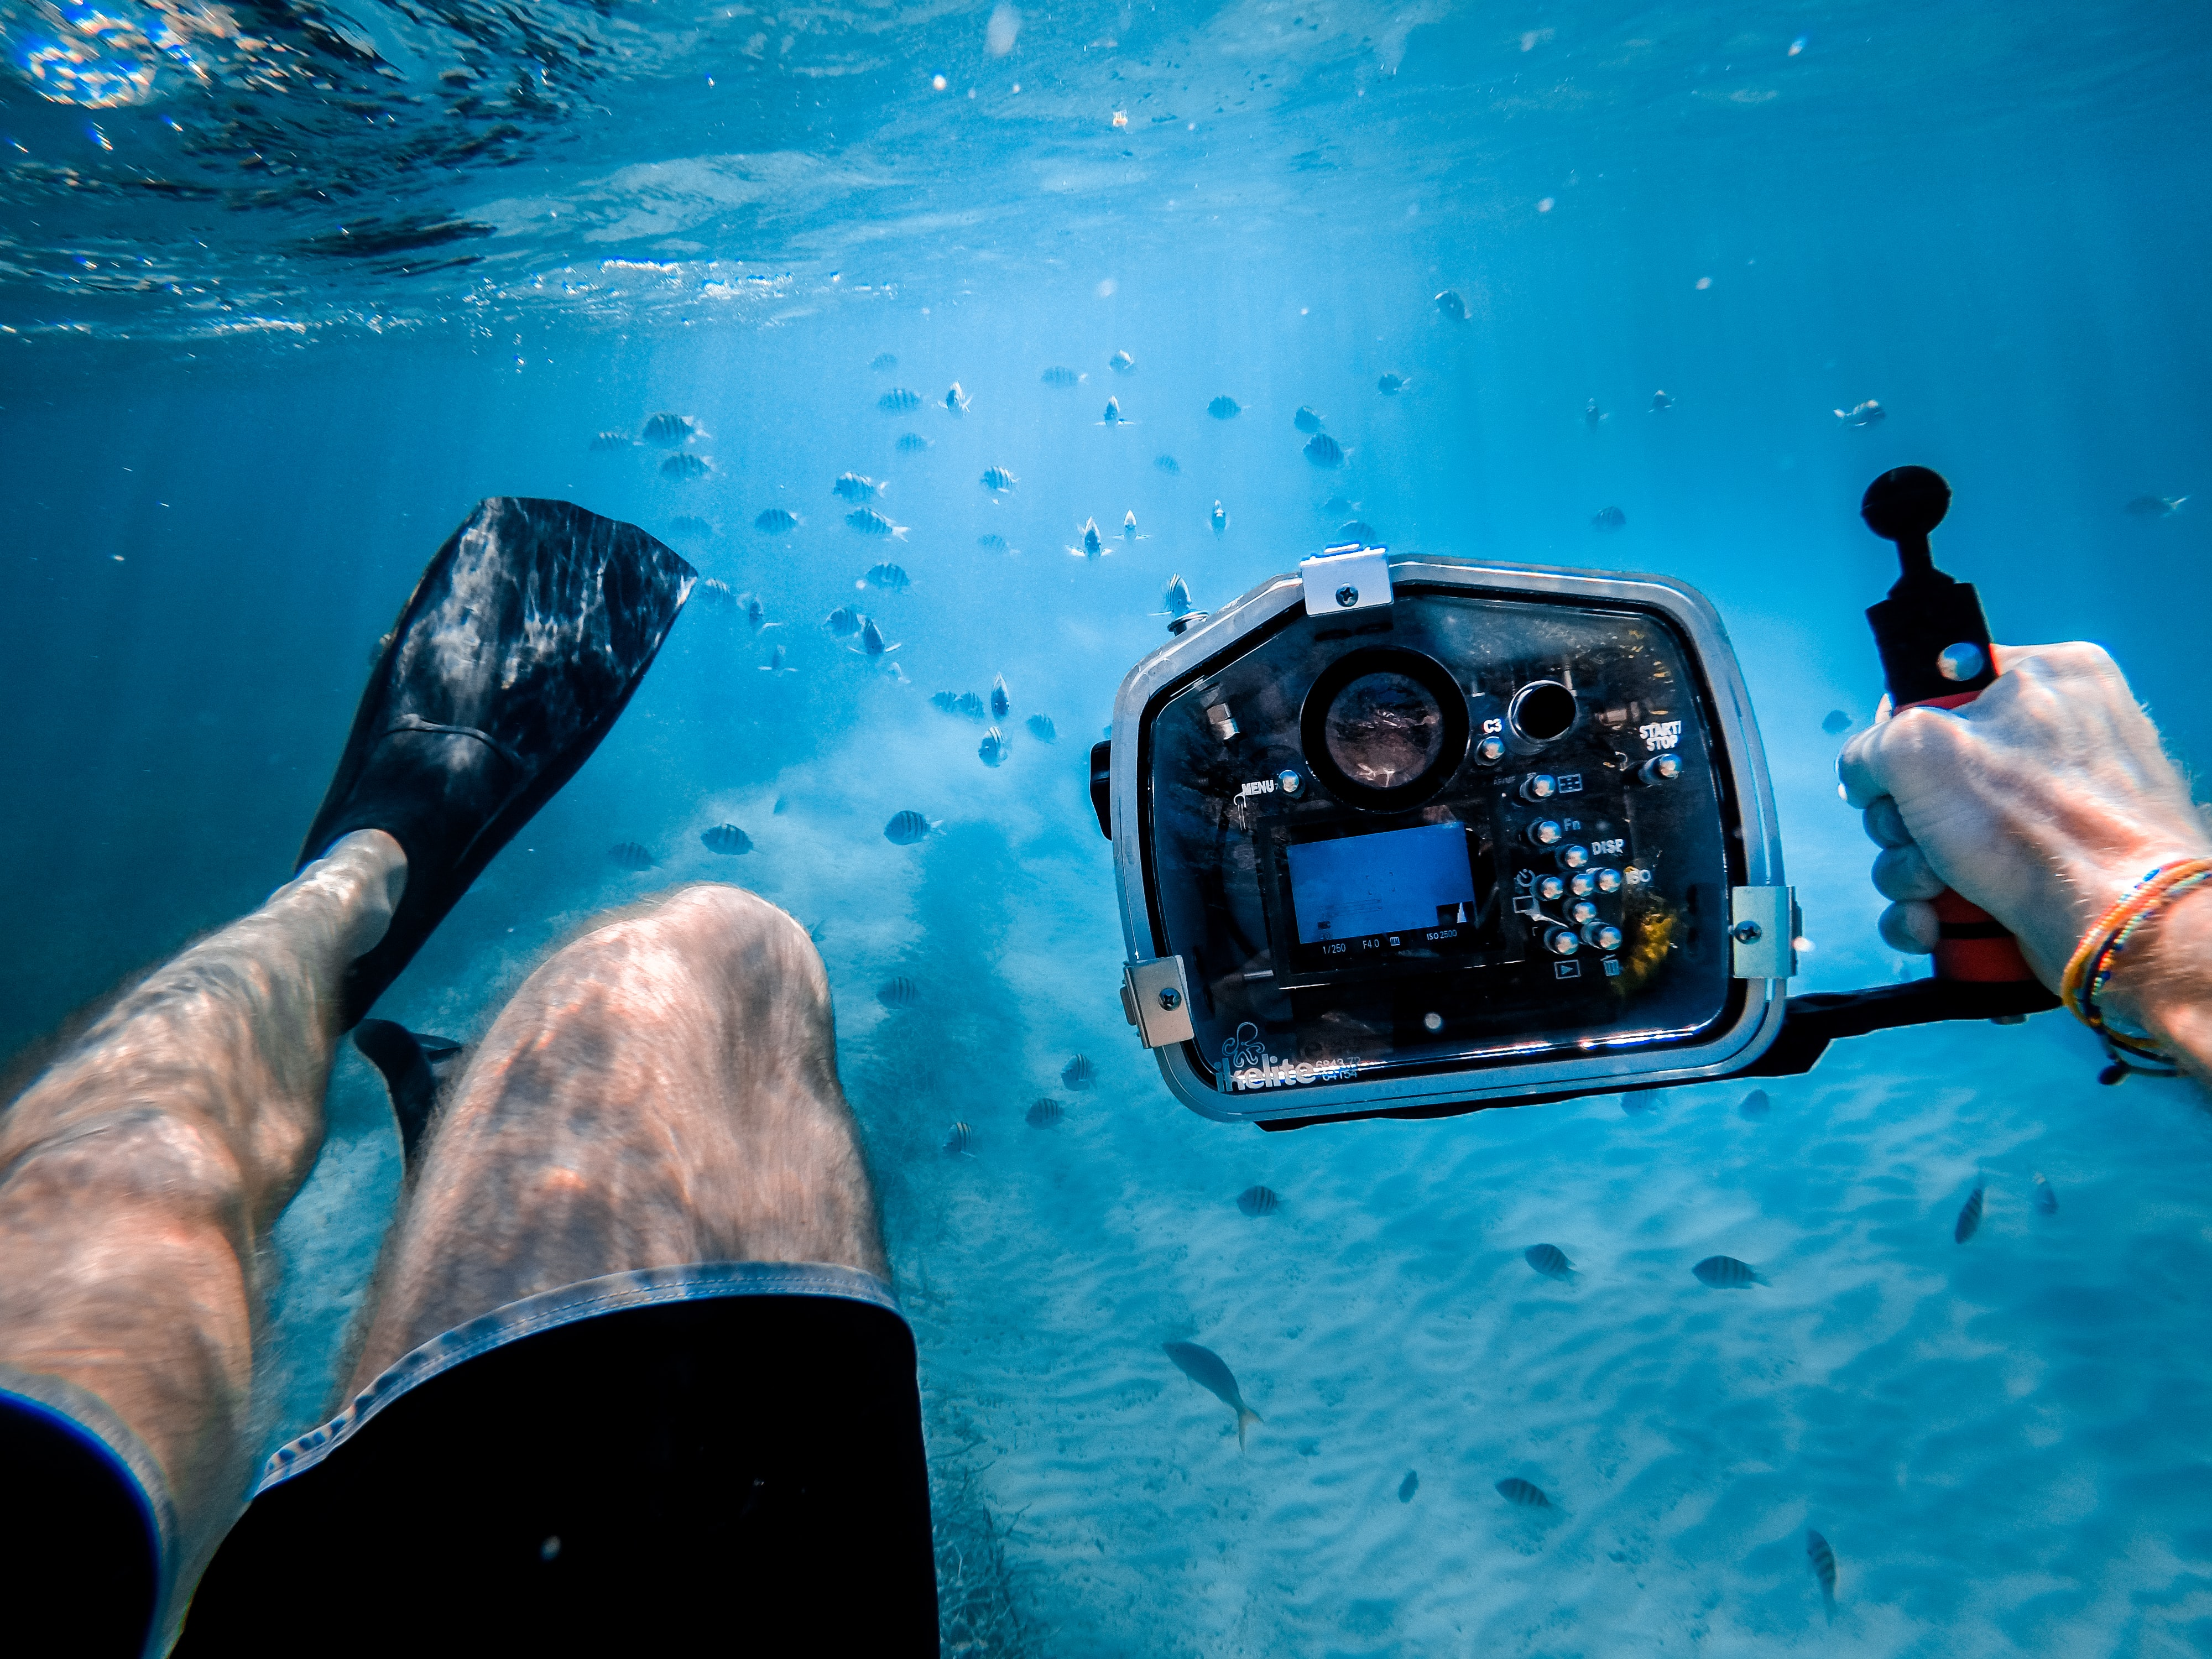 An underwater shot of a diver taking photos of the fishes and the seabed.